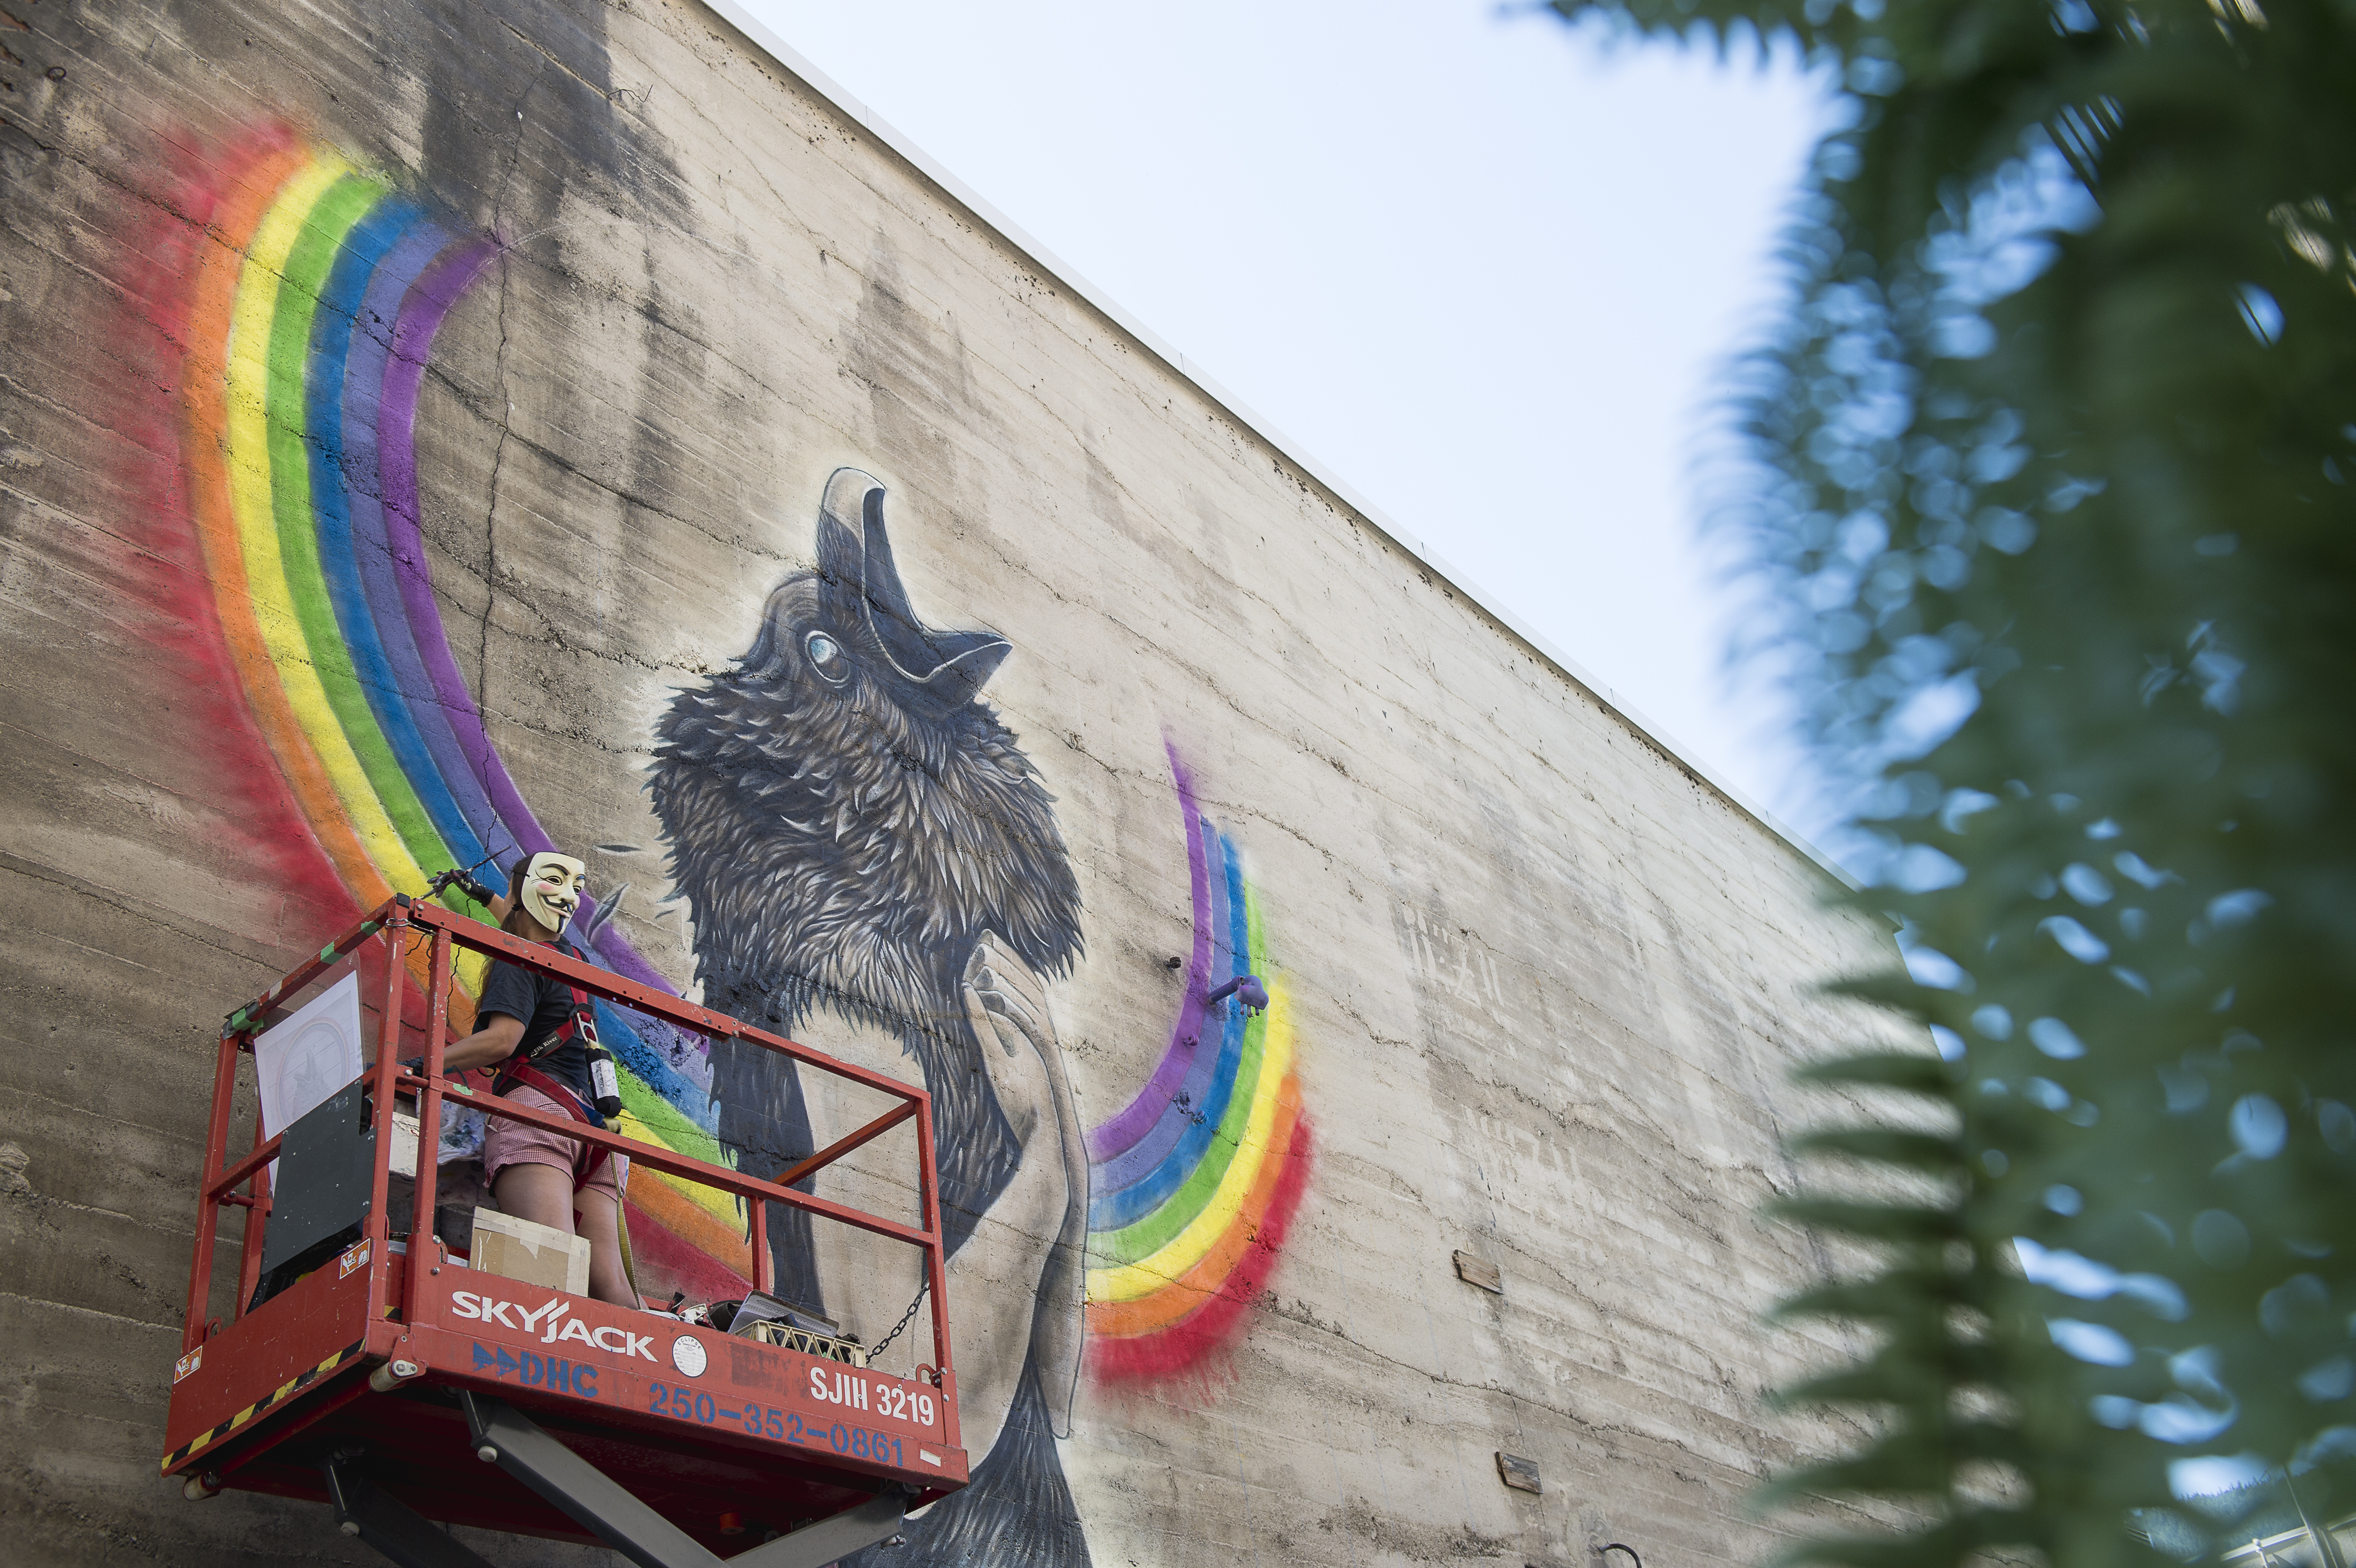 Nelson Mural Festival issues call for artists - My Nelson Now